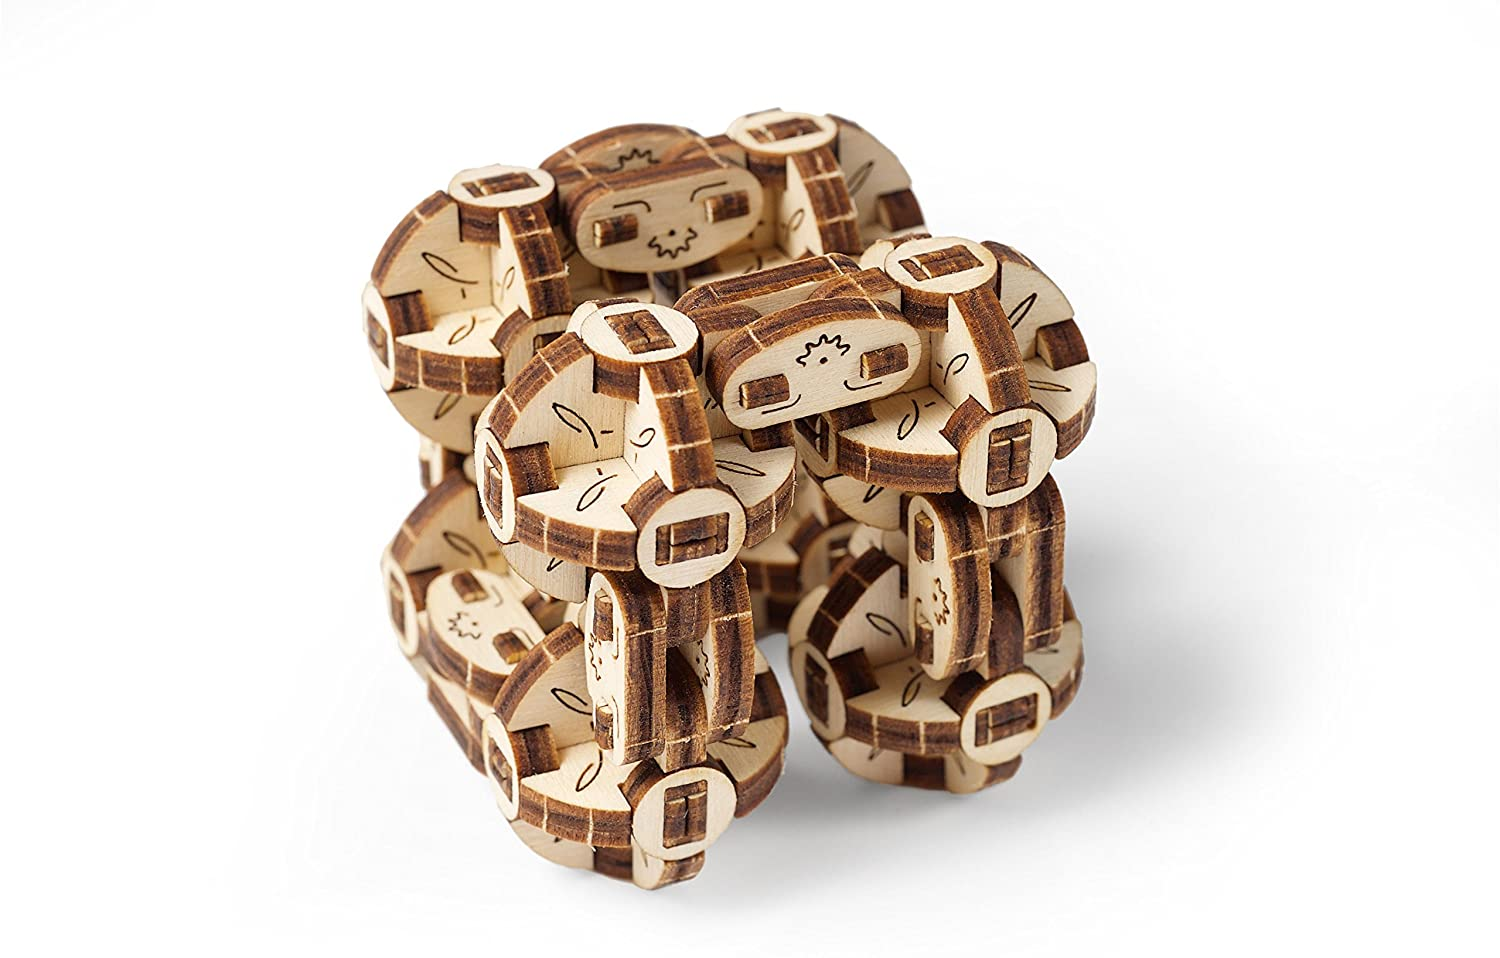 UGears Flexi-Cubus – Mechanical Puzzle Flexi-Cubus- Anti-stress 3D Puzzle- Improves Attention and Focus- Self Assembly Model- 144 Pieces Model